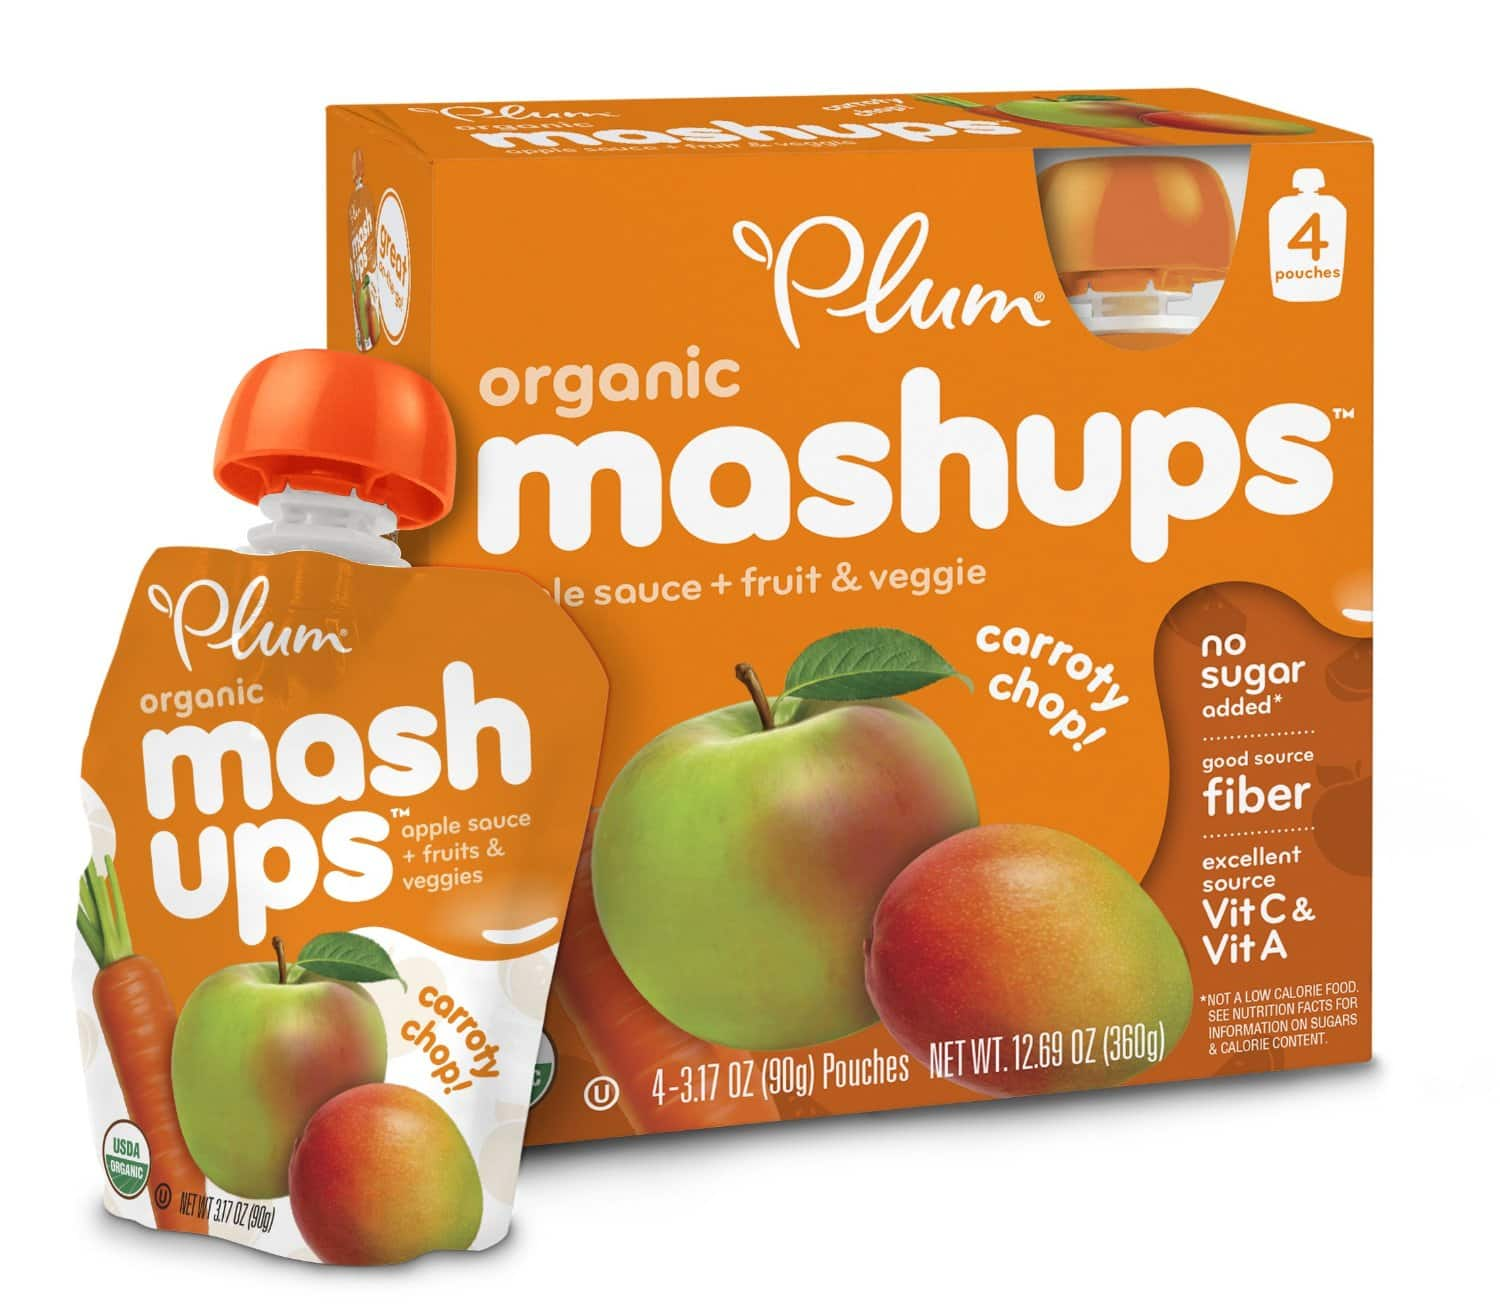 6 Pack Plum Kids Organic Fruit and Veggie Mashups Carroty Chop 3.17 Ounce 4 Count for $13.73 at amazon